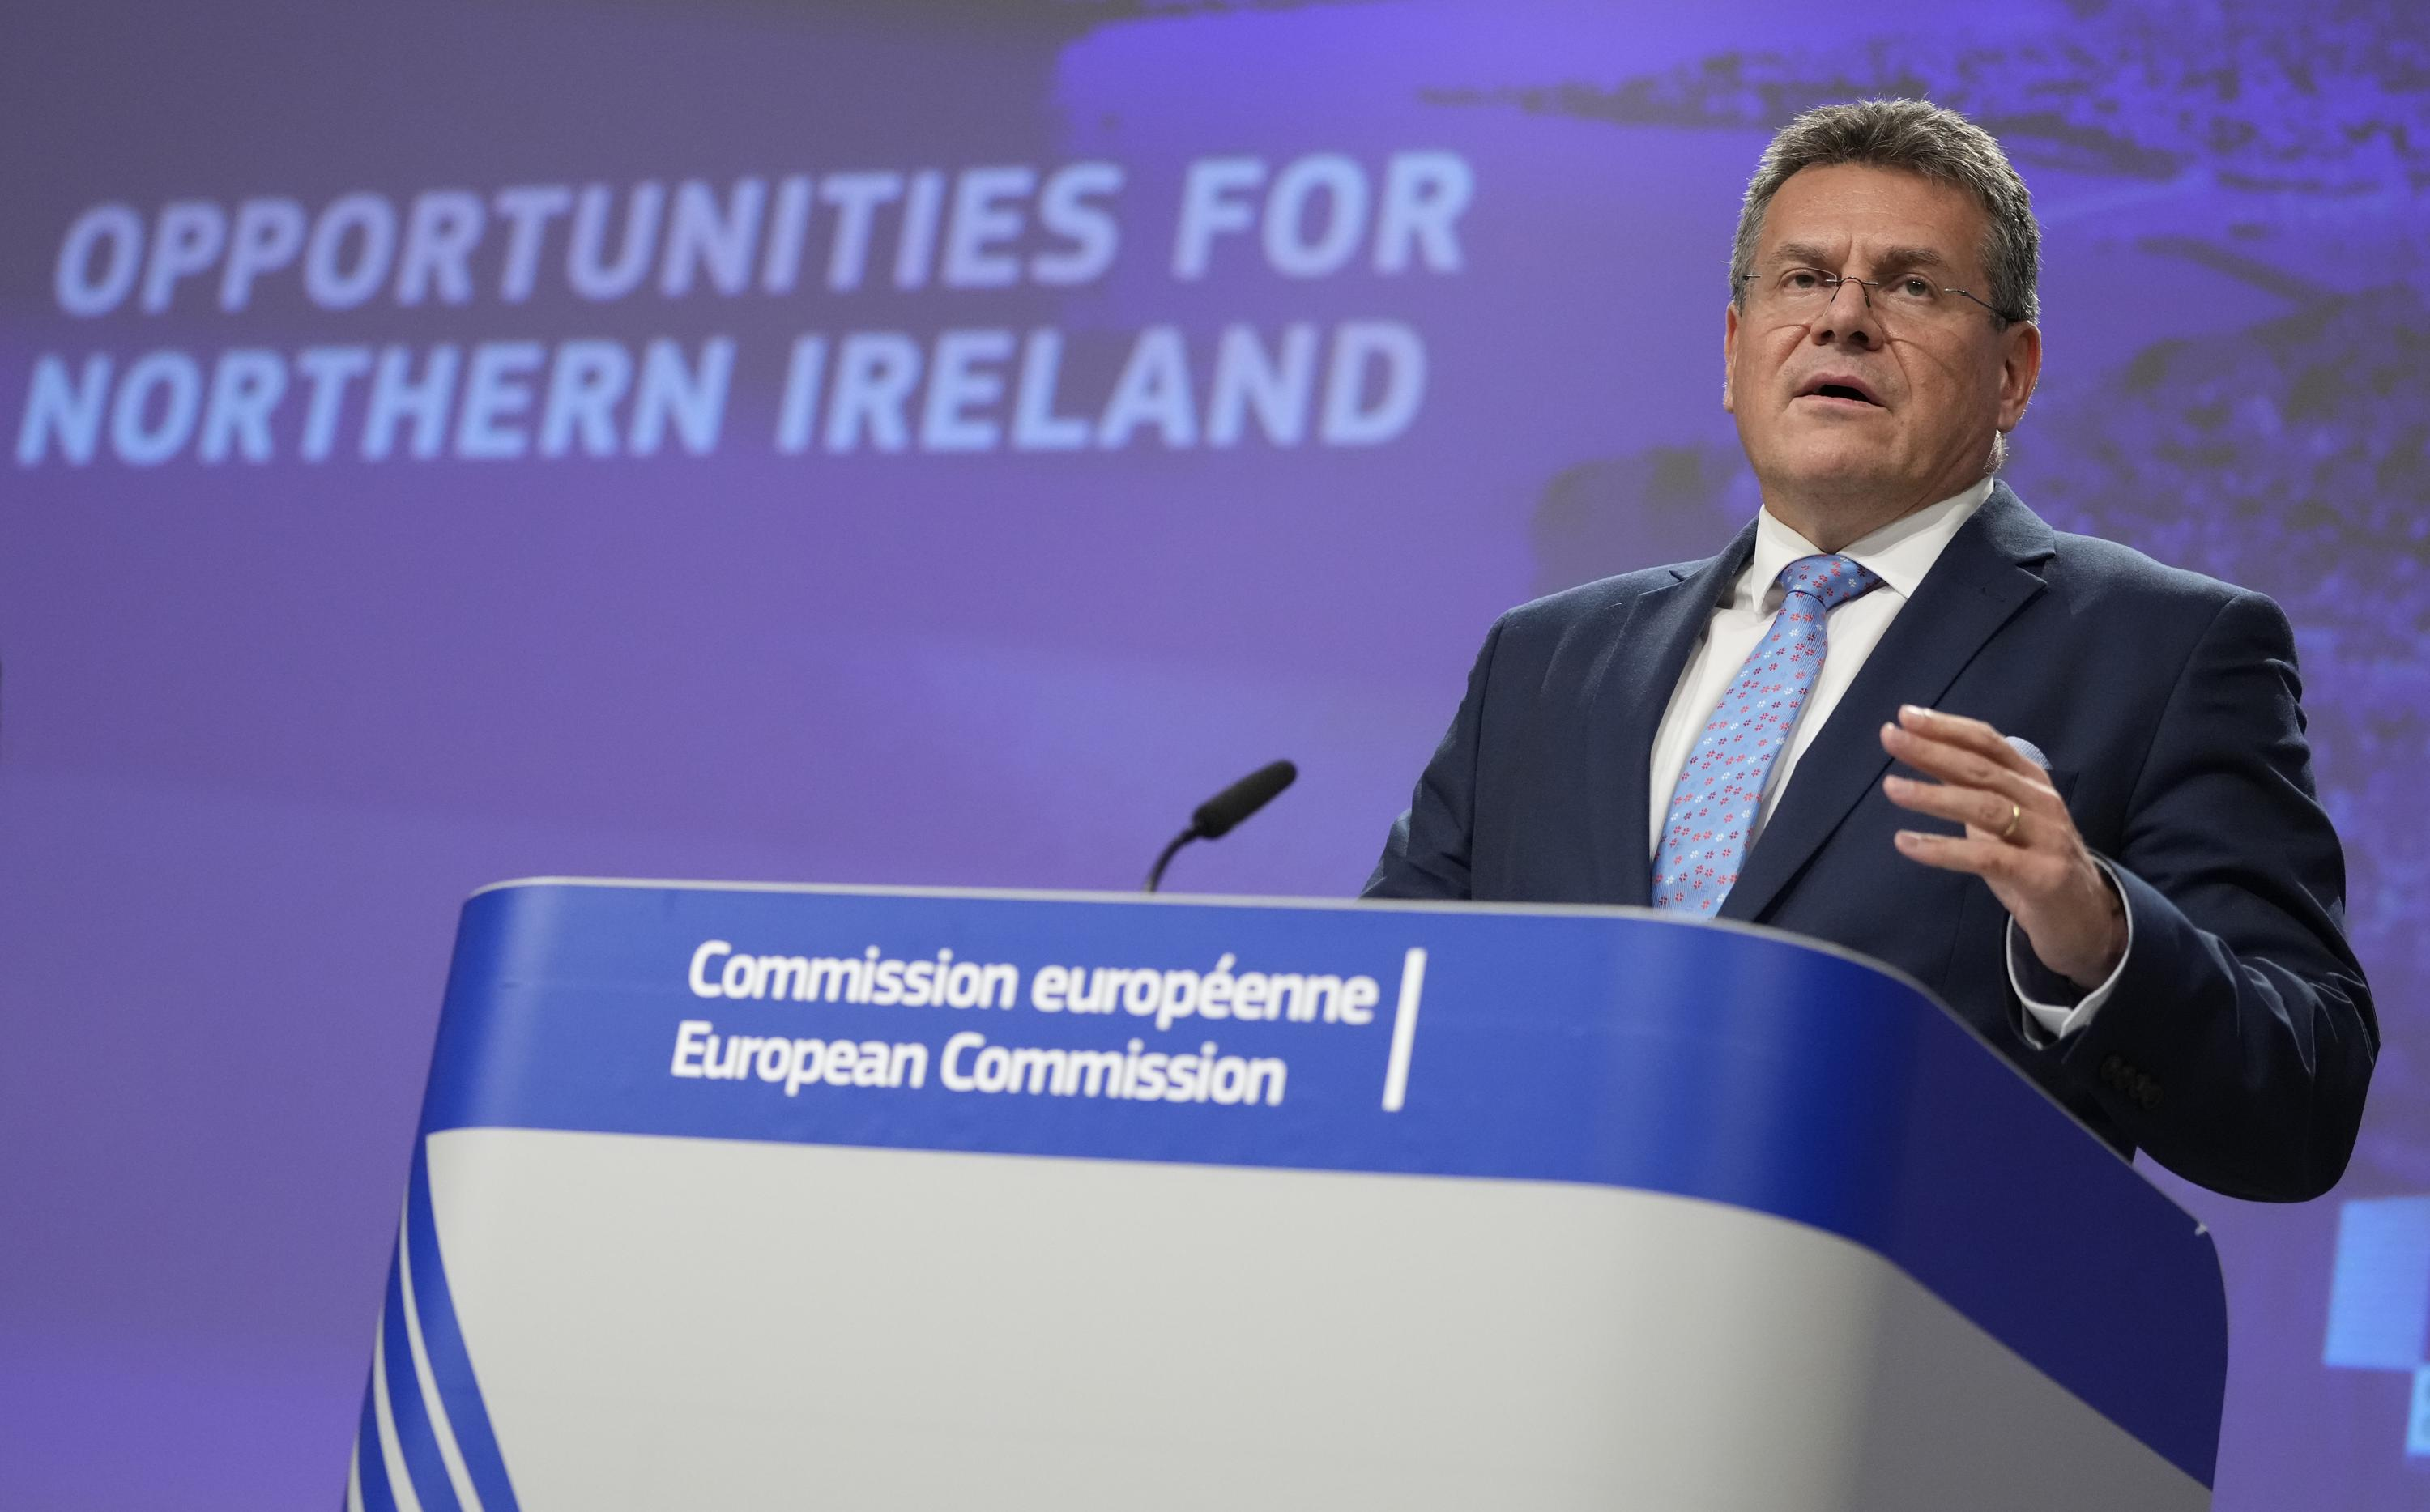 Great Brexit brawl: EU offers to improve N Ireland deal